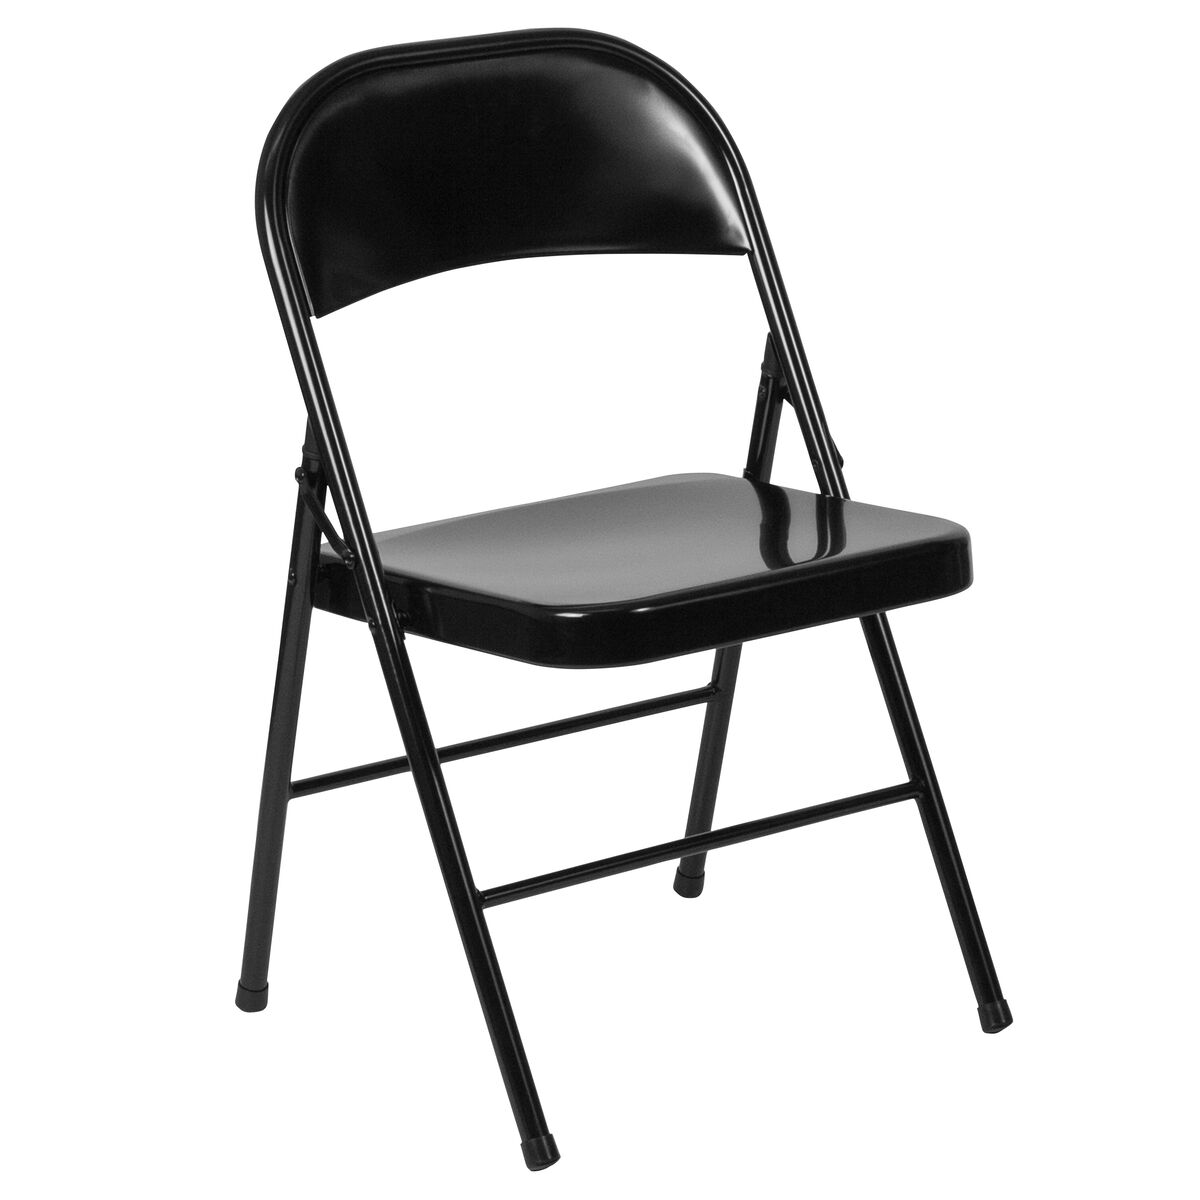 Strange Hercules Series Double Braced Black Metal Folding Chair Caraccident5 Cool Chair Designs And Ideas Caraccident5Info